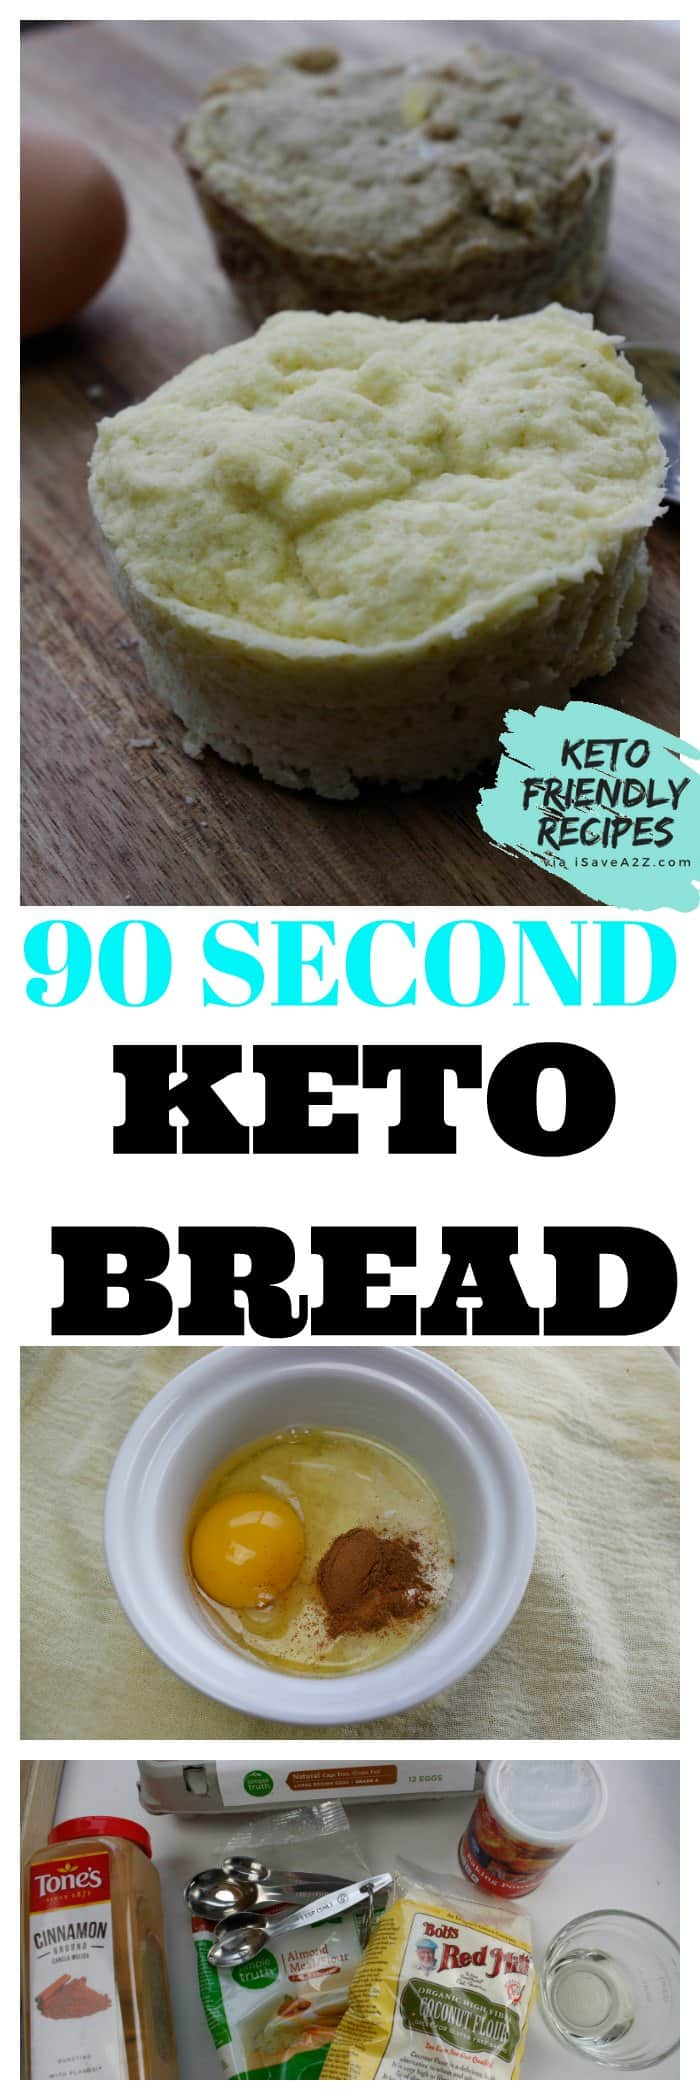 Keto 90 Second Bread Recipe done 2 different ways - Sweet or Savory!